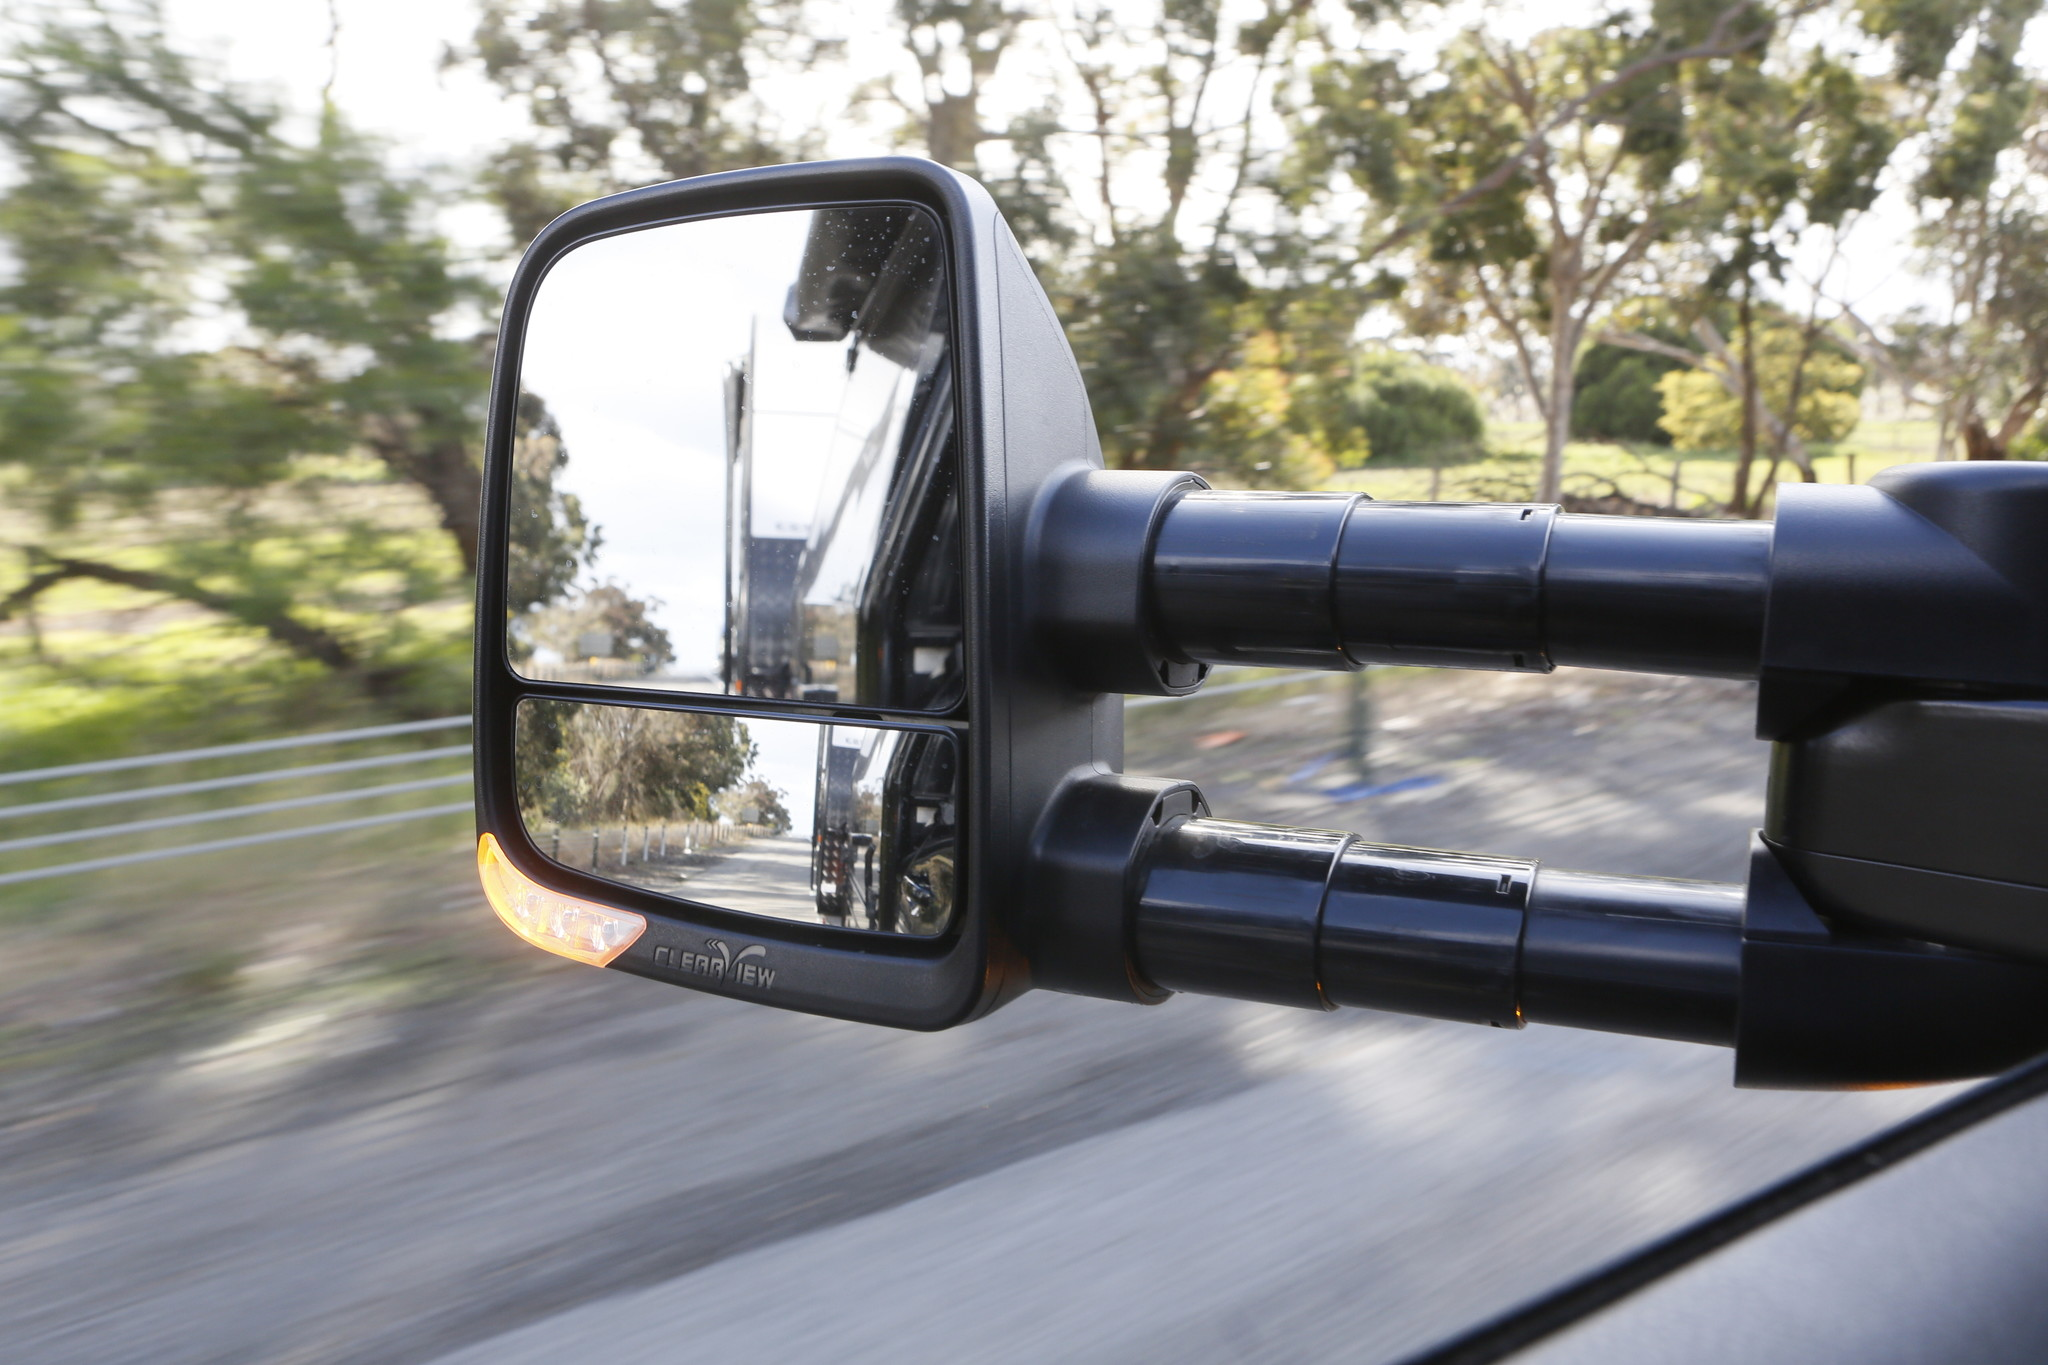 Toyota NEXT GENERATION: Clearview Towing Mirror Isuzu D-Max 2012+